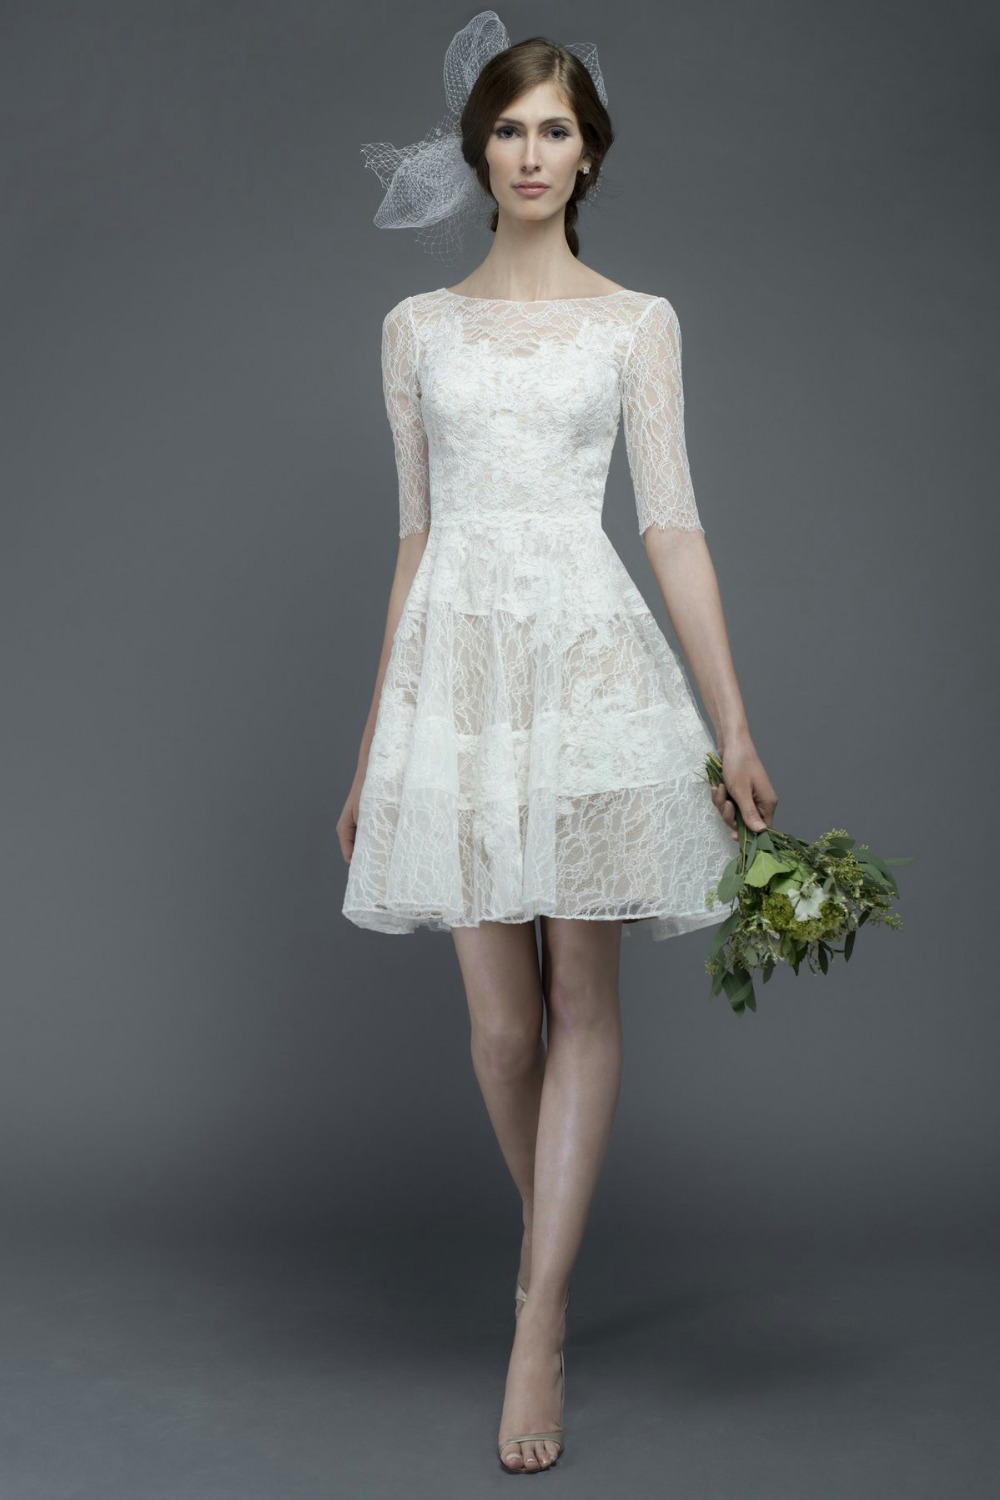 Elegant simple short wedding dresses for Elegant wedding party dresses